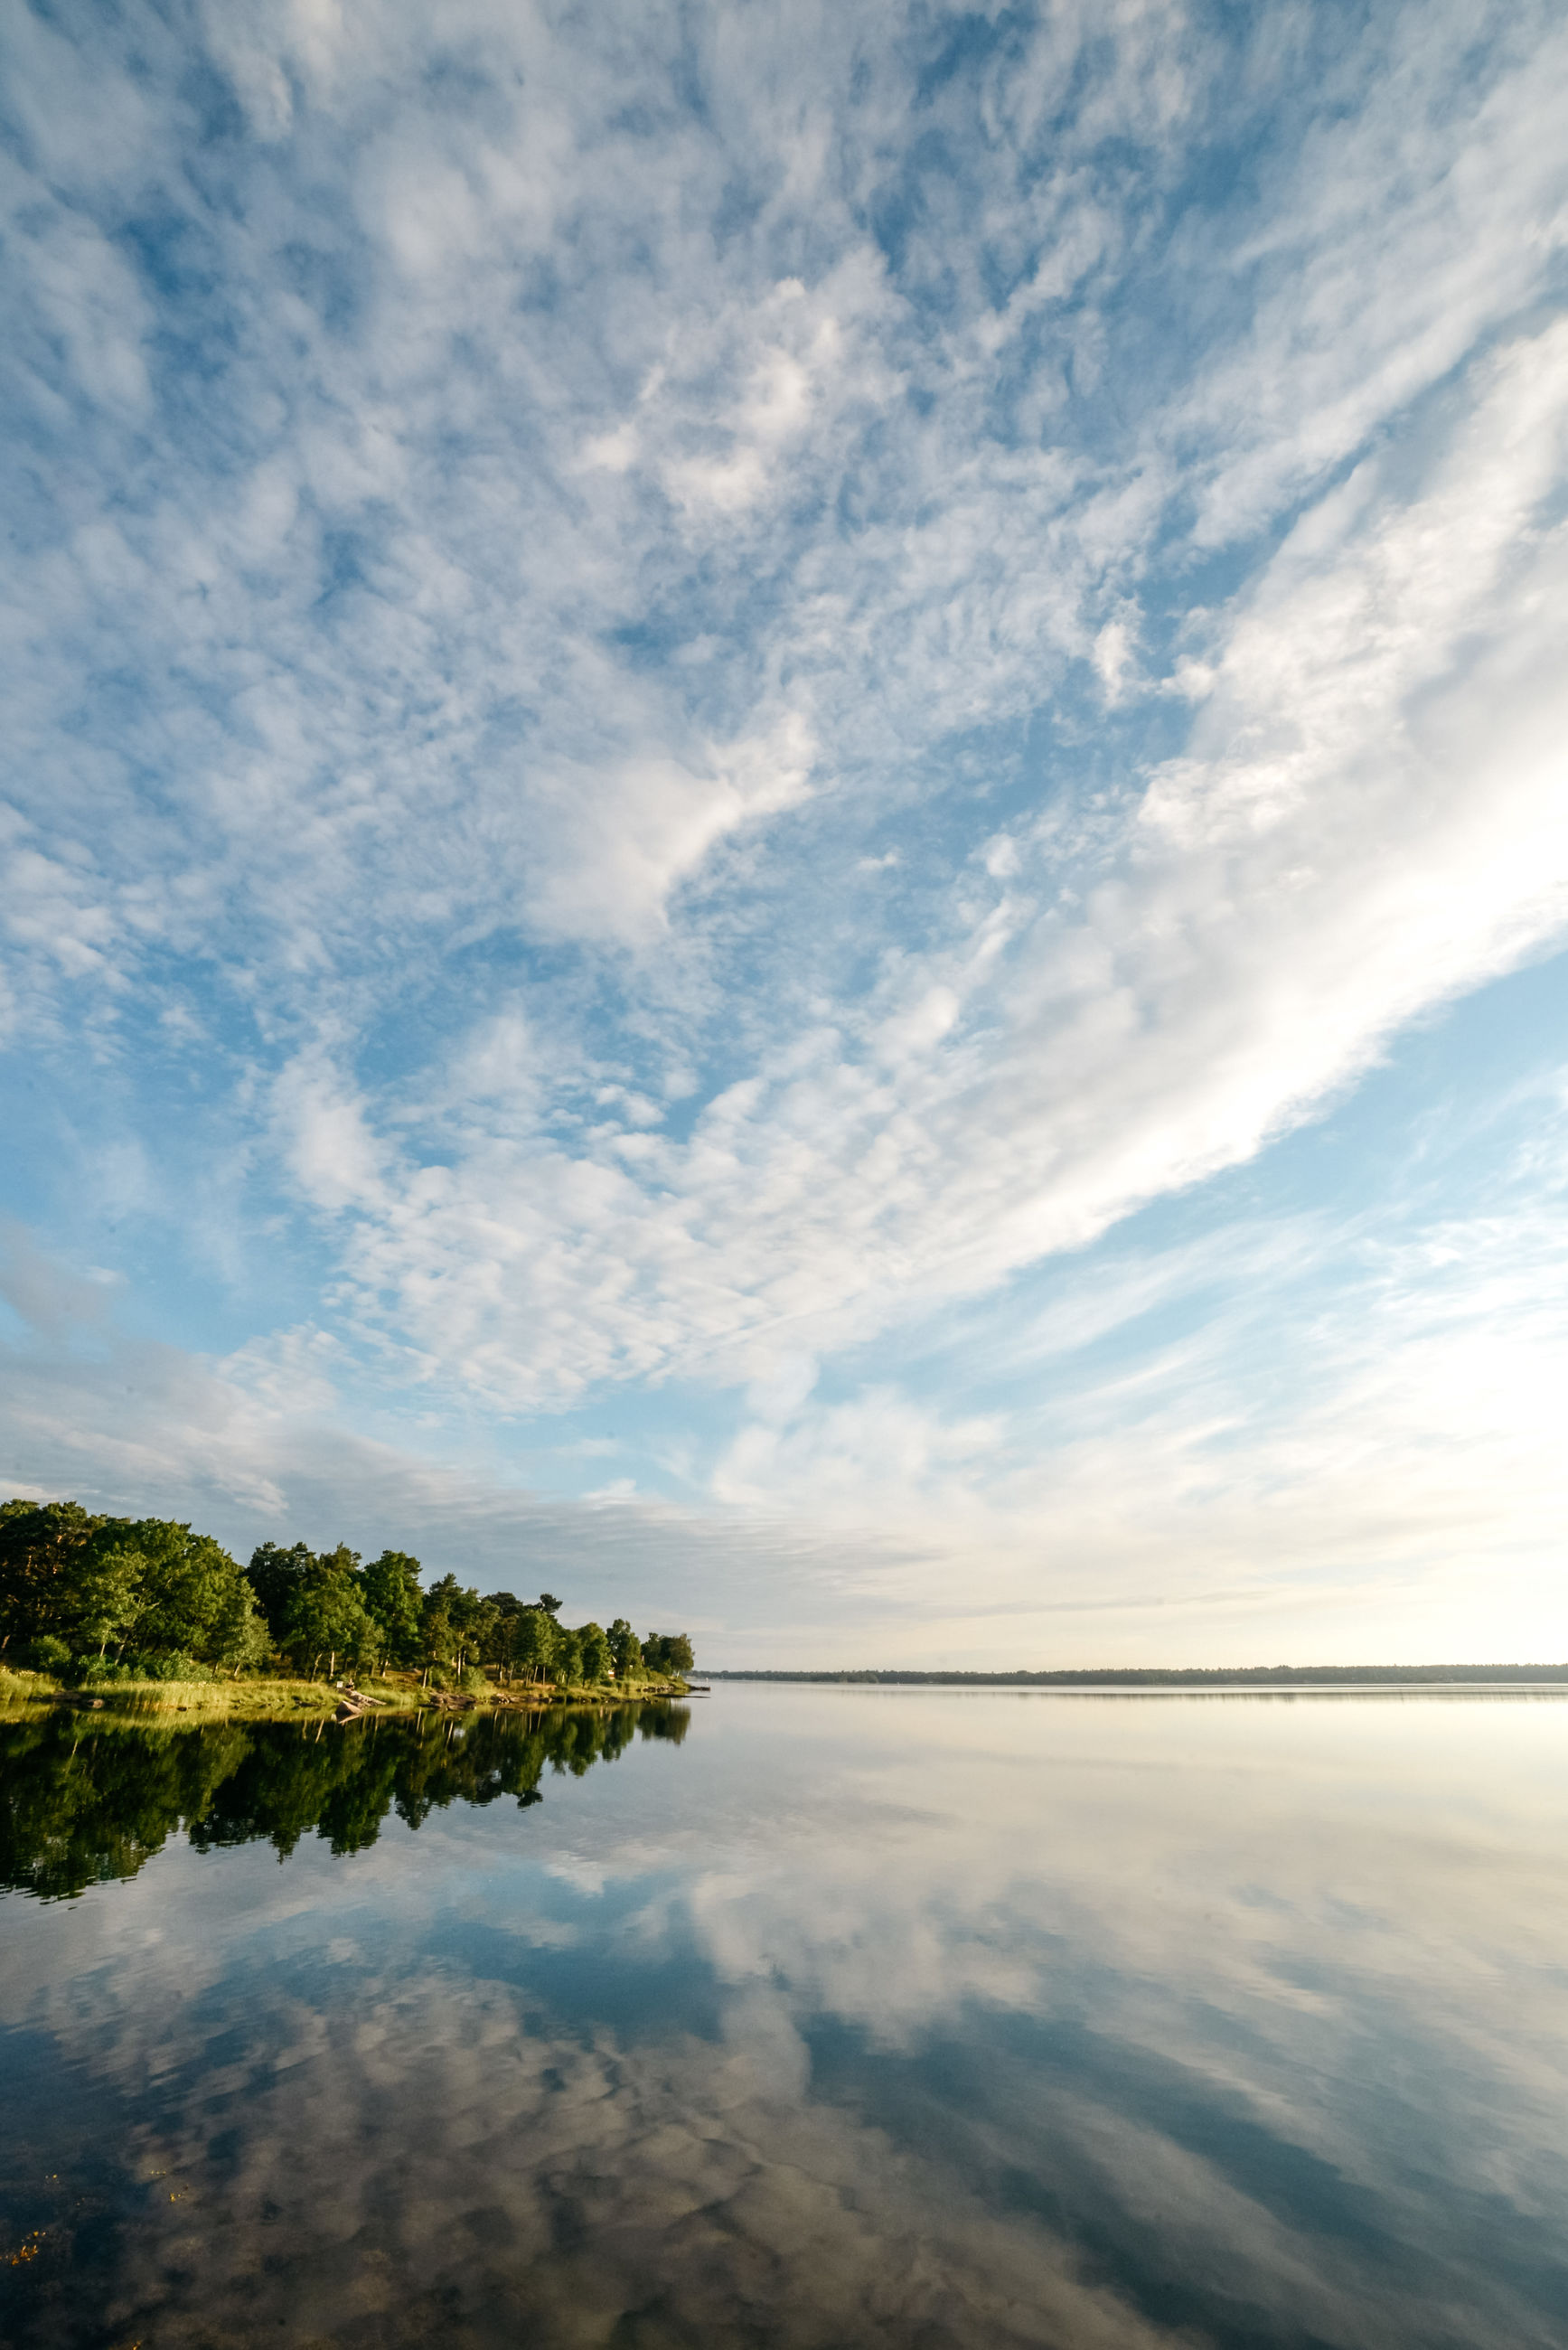 sky, cloud - sky, water, scenics - nature, tranquility, reflection, tranquil scene, beauty in nature, lake, nature, waterfront, no people, idyllic, non-urban scene, tree, day, plant, outdoors, reflection lake